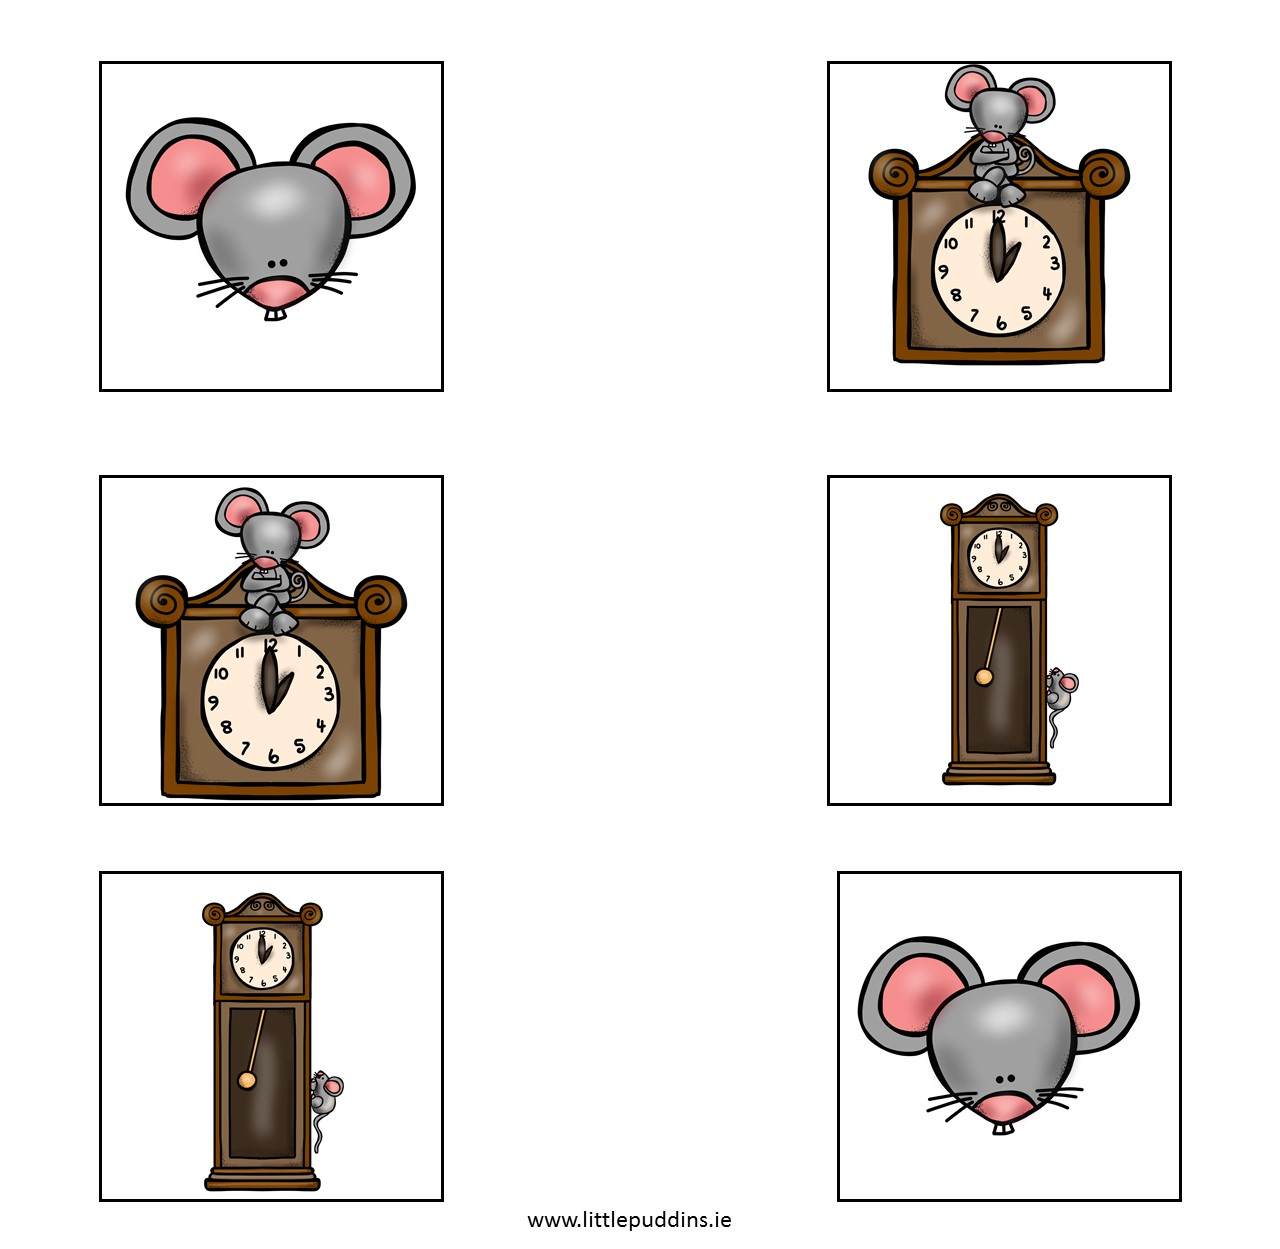 Hickory Dickory Dock Printable Little Puddins